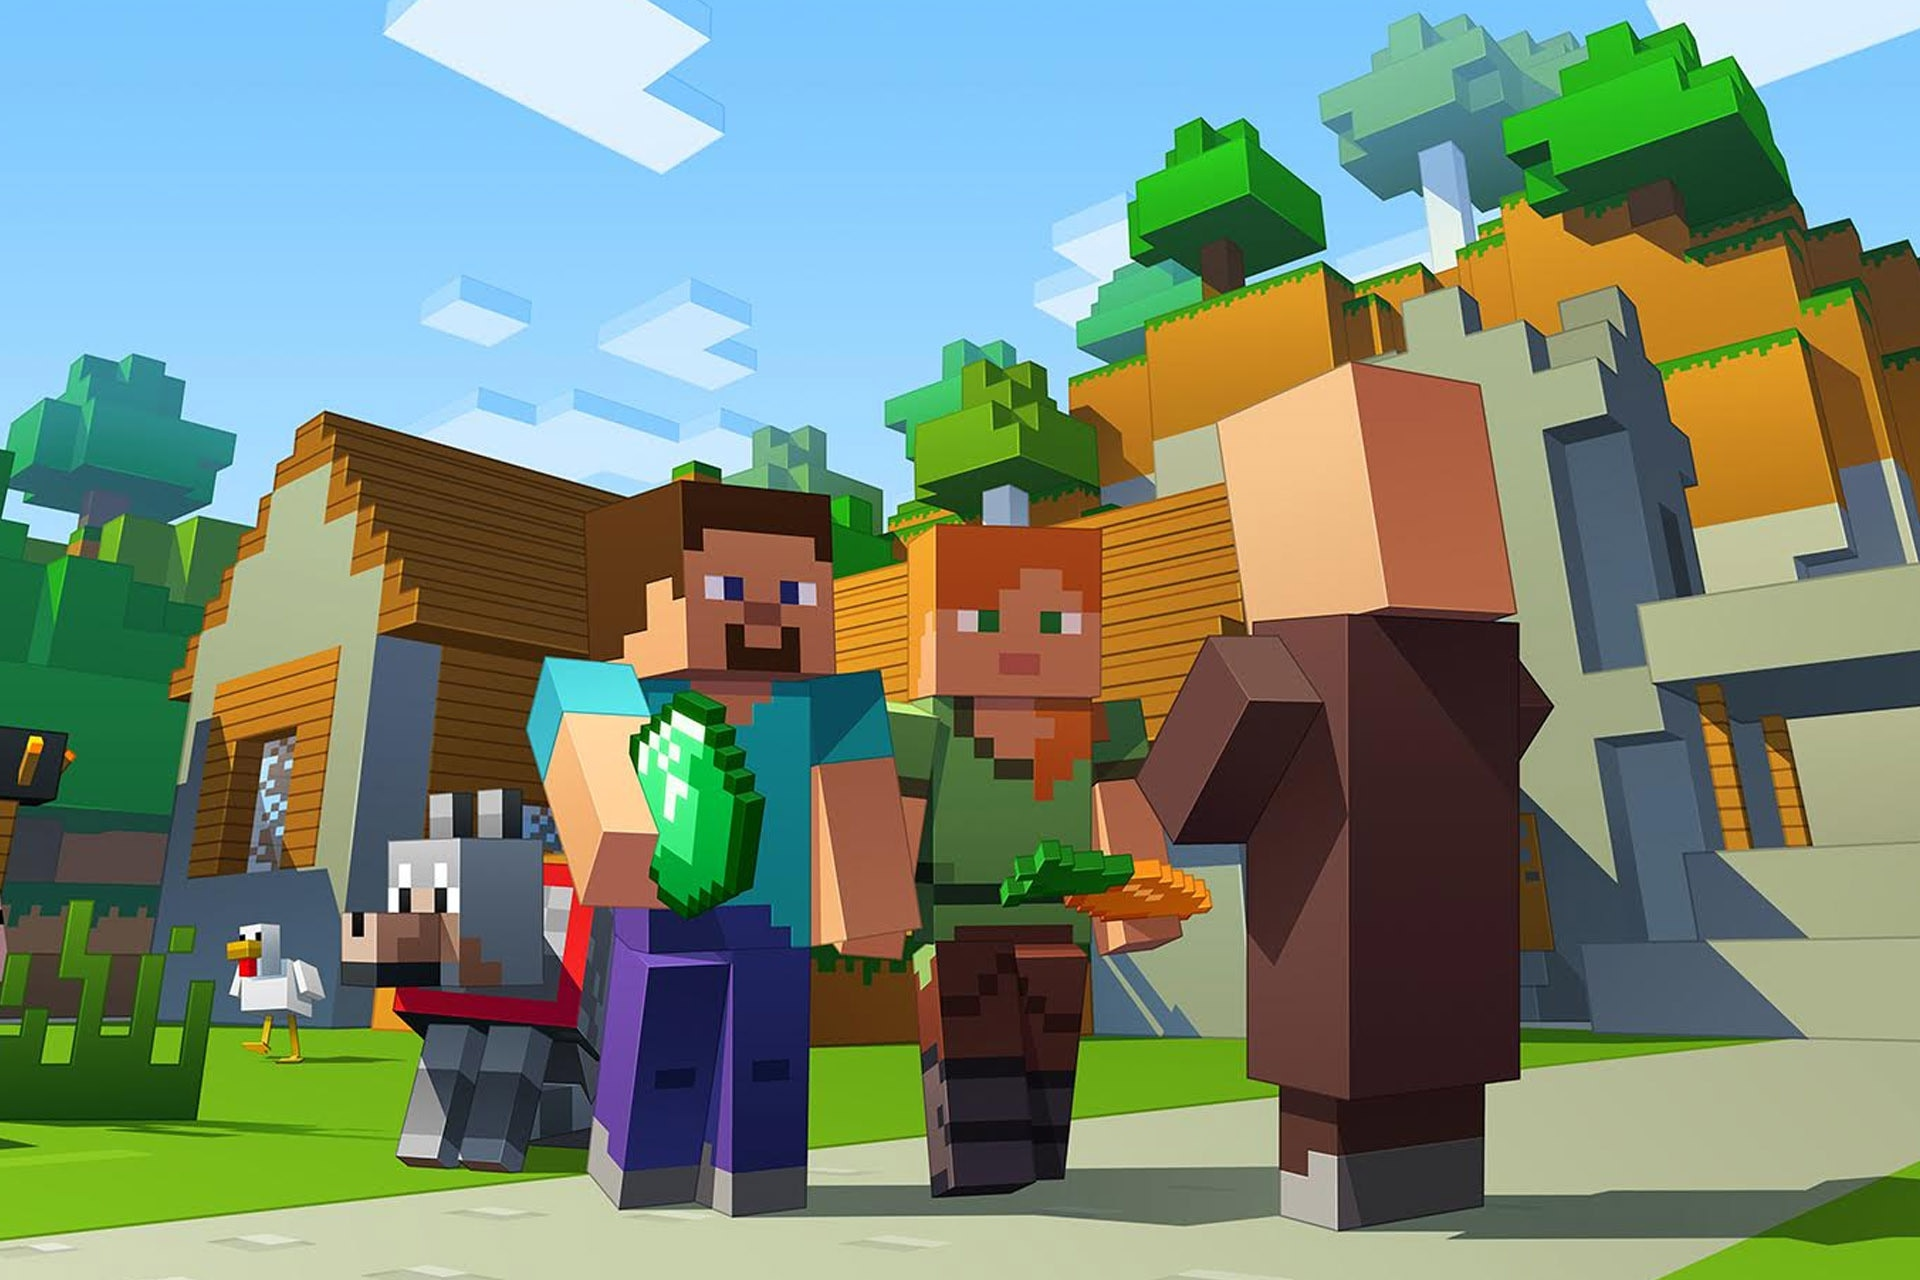 This Week's Mini Cooked Unit Is An Eight-Year-Old Who Accidentally Spent Over $5K Playing Minecraft